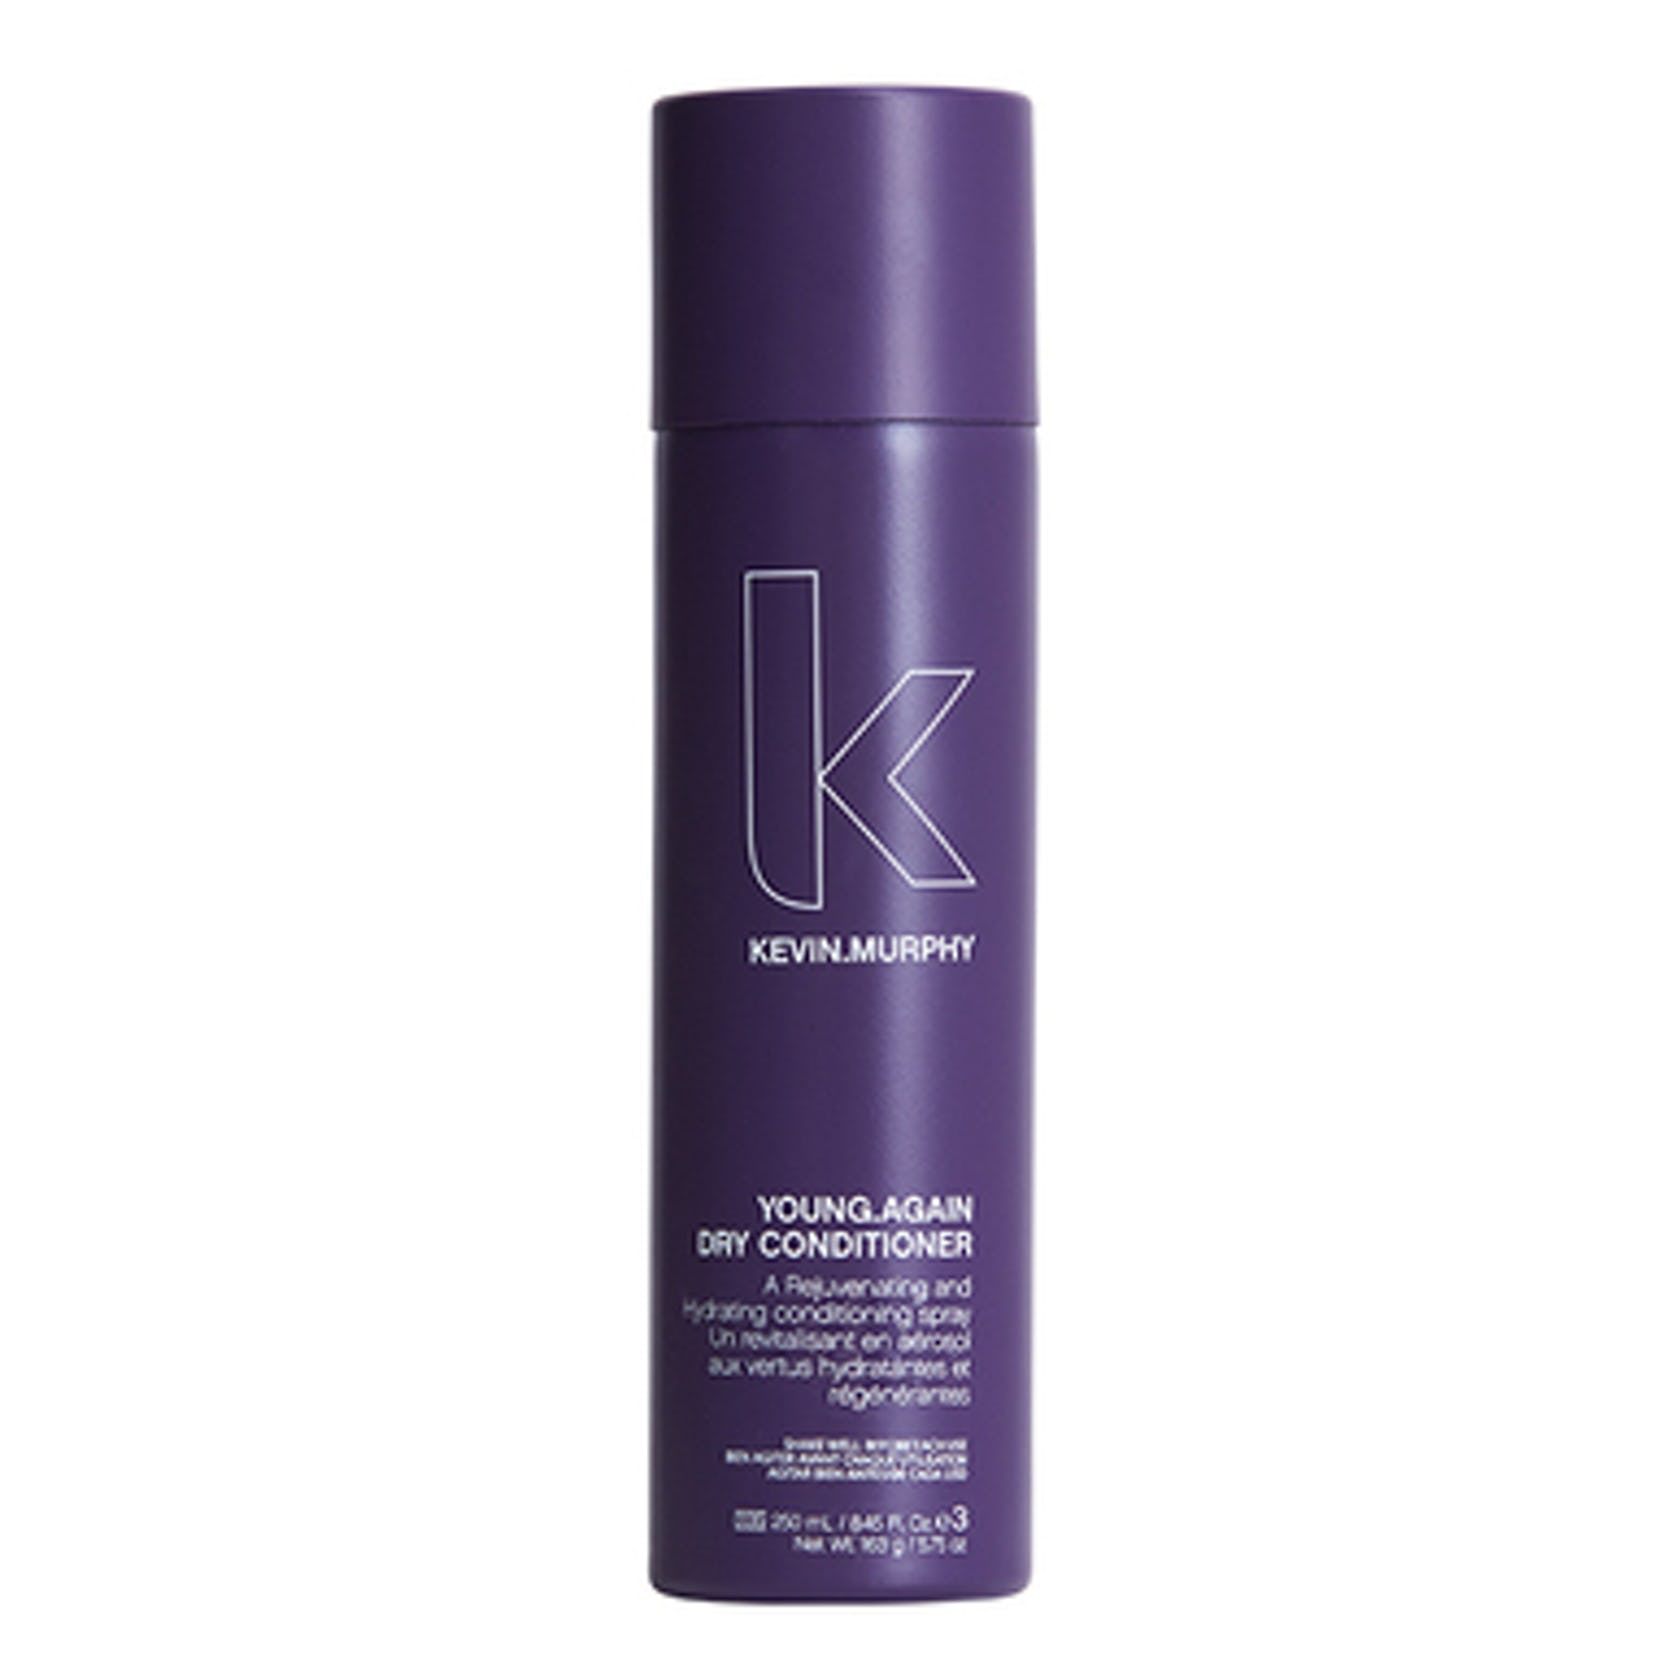 YOUNG.AGAIN DRY CONDITIONER SPRAY 250ML